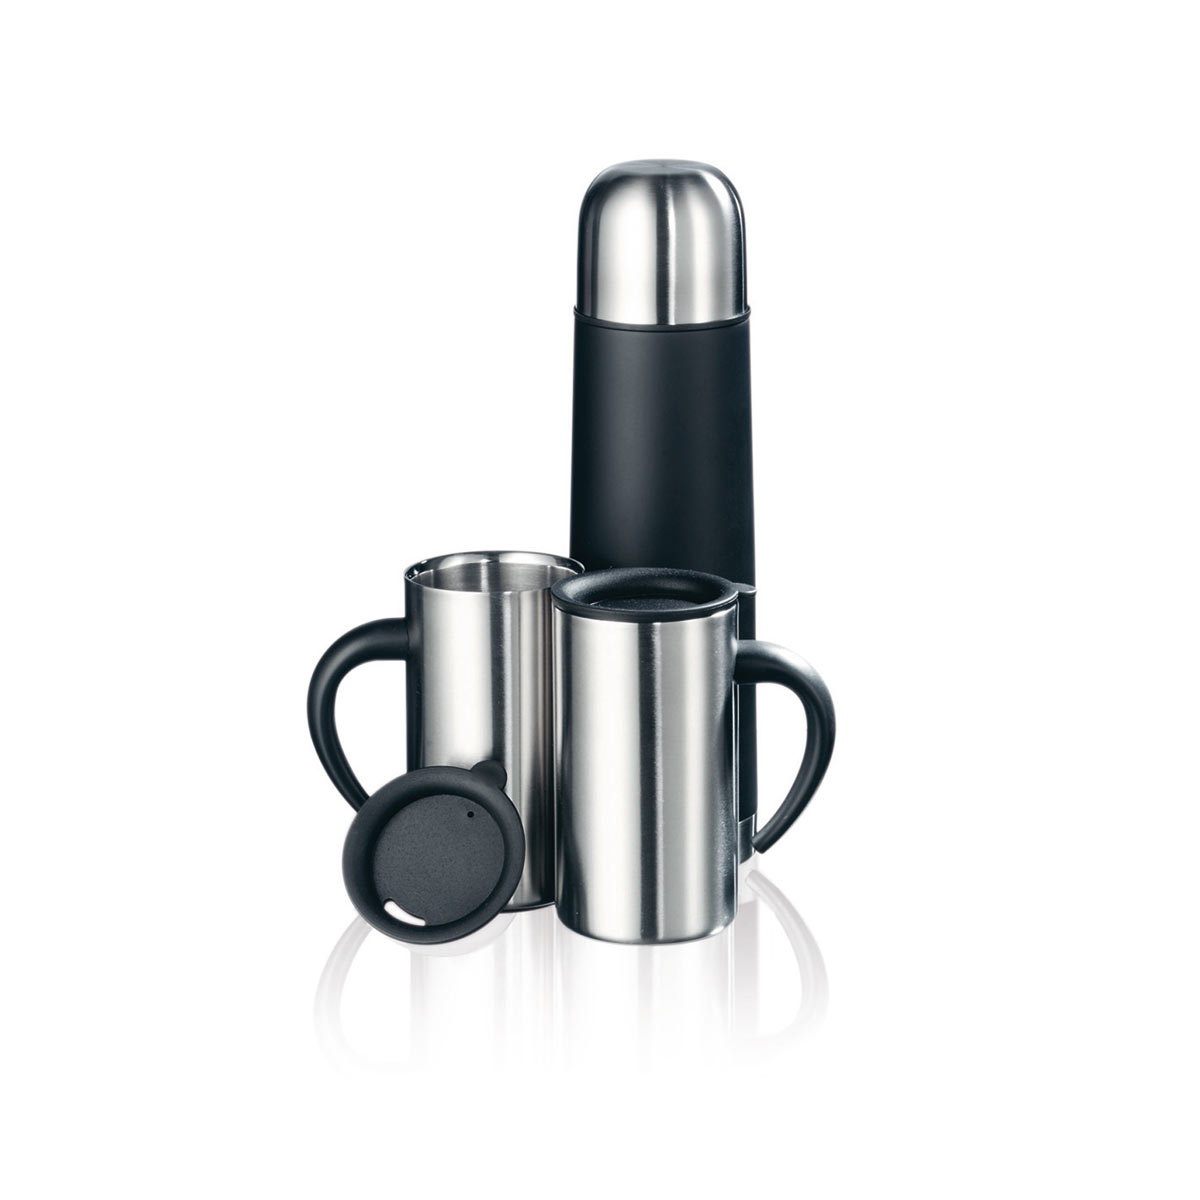 bouteille thermos publicitaire originale mug isotherme. Black Bedroom Furniture Sets. Home Design Ideas